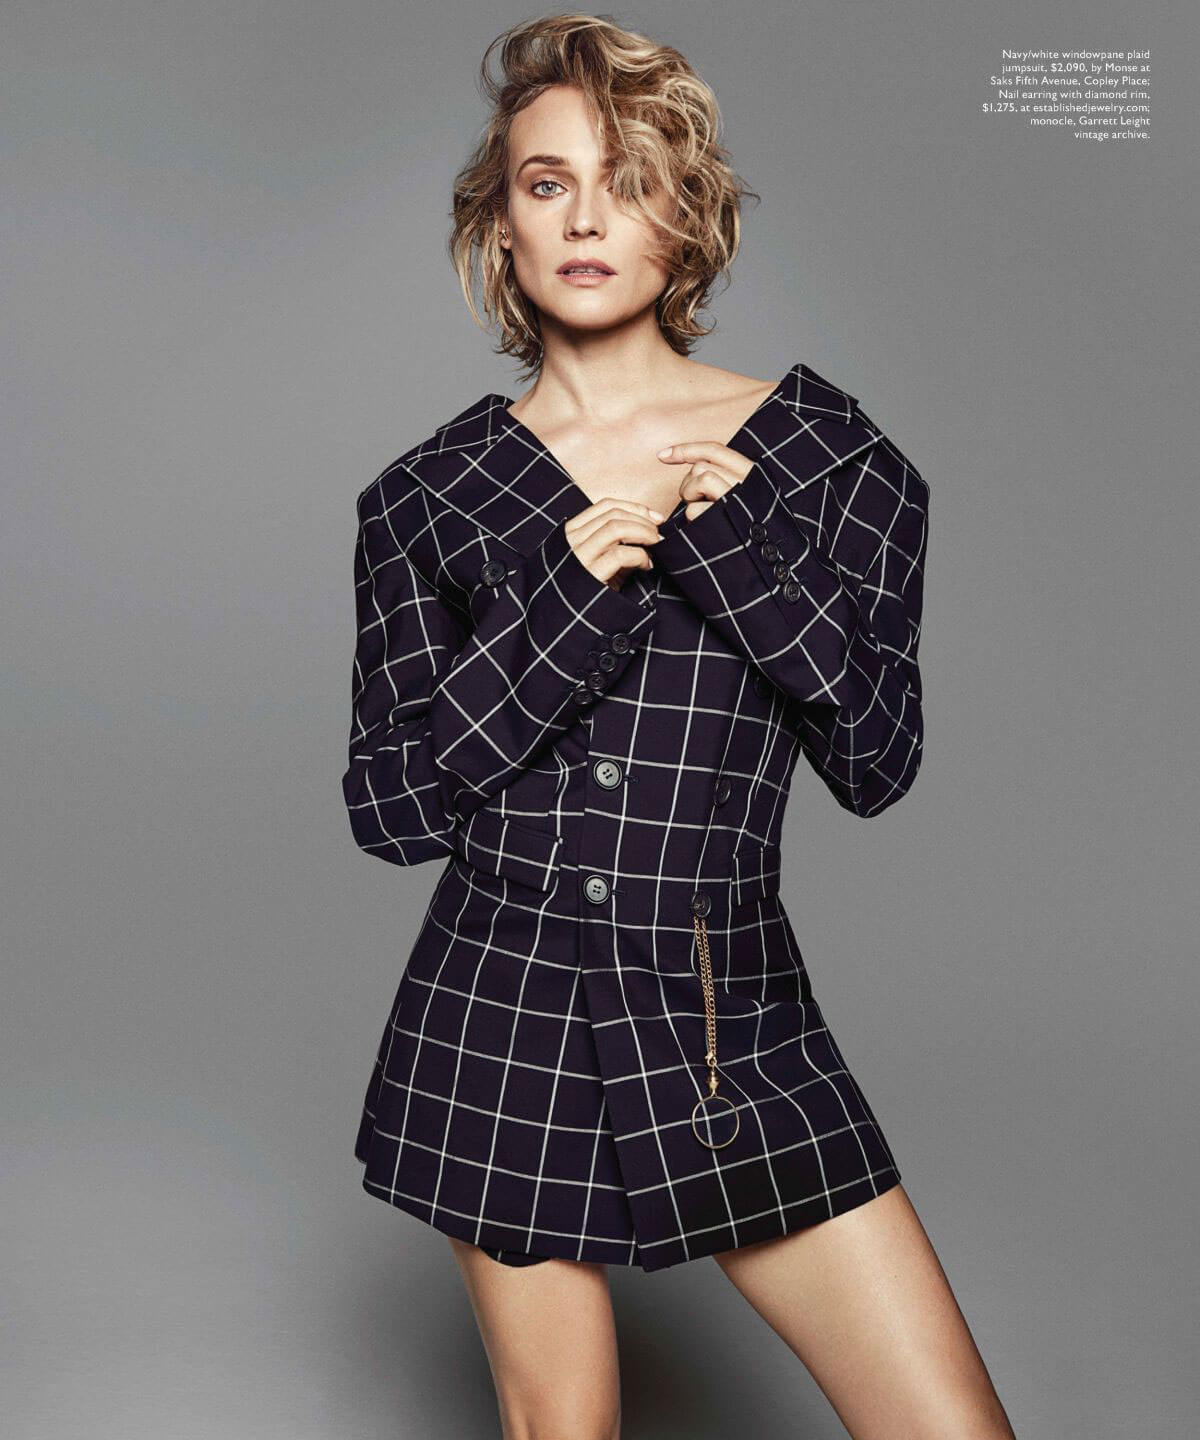 Diane Kruger Poses for Boston Common Magazine,January 2018 Issue